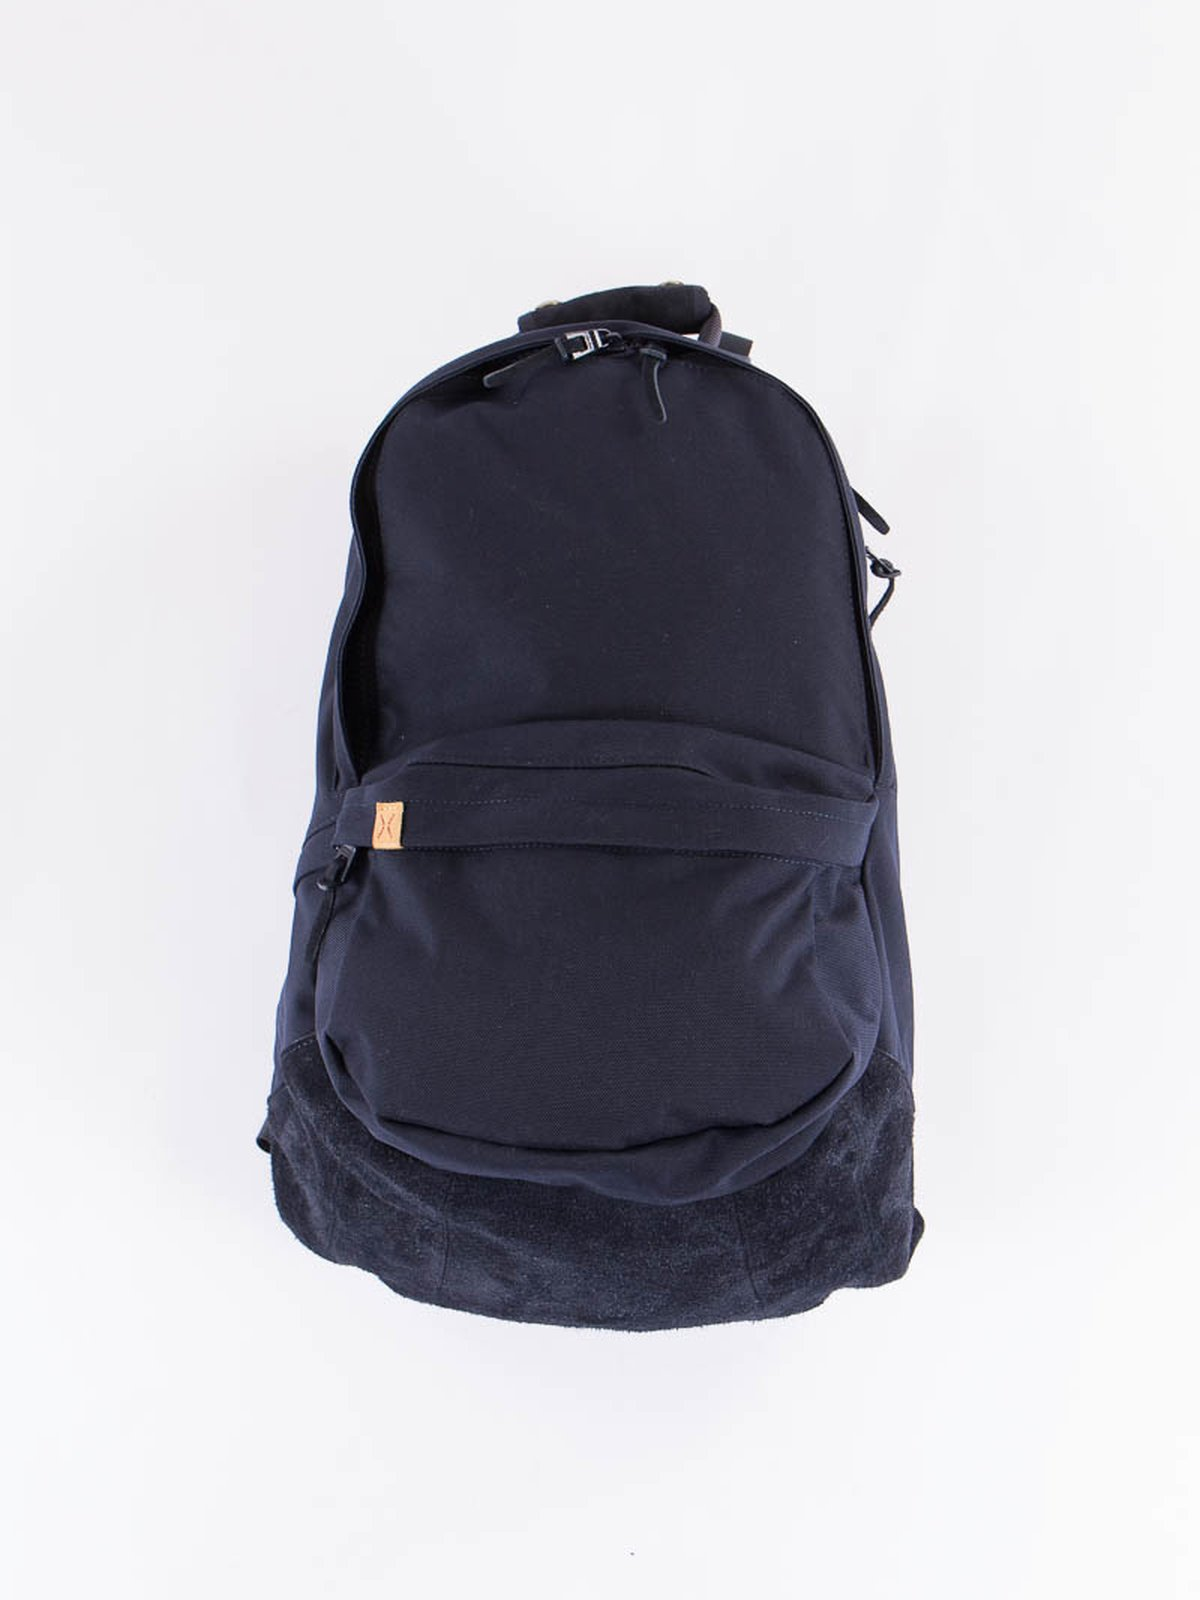 Navy 22L Ballistic Backpack - Image 1